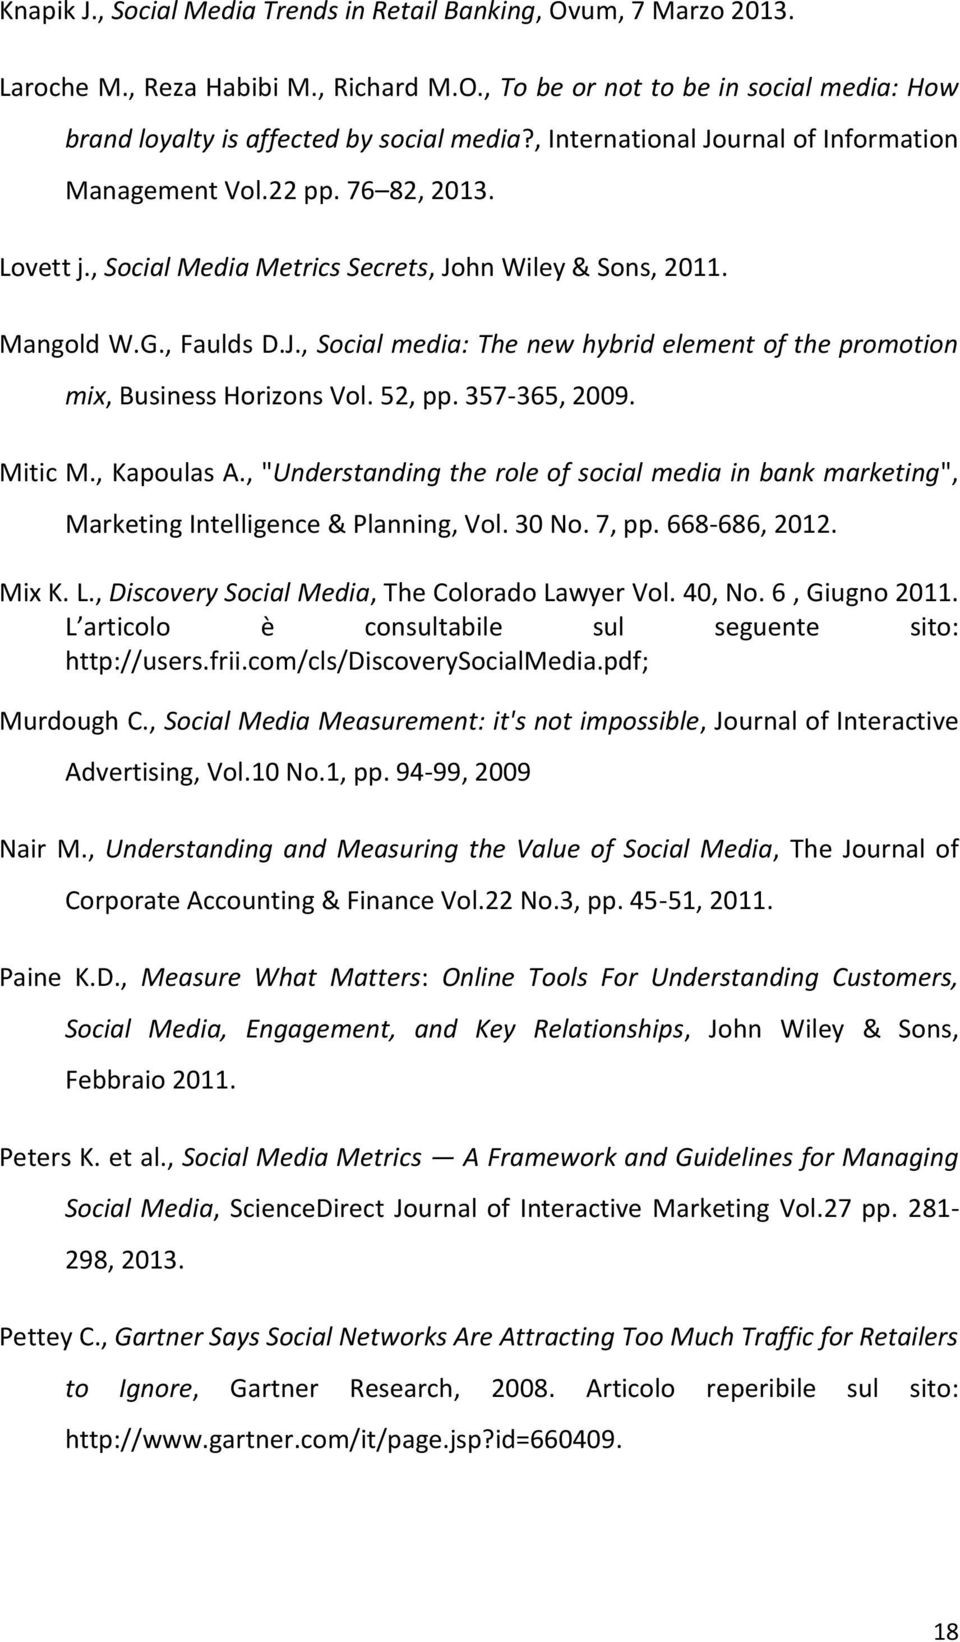 "52, pp. 357-365, 2009. Mitic M., Kapoulas A., ""Understanding the role of social media in bank marketing"", Marketing Intelligence & Planning, Vol. 30 No. 7, pp. 668-686, 2012. Mix K. L."